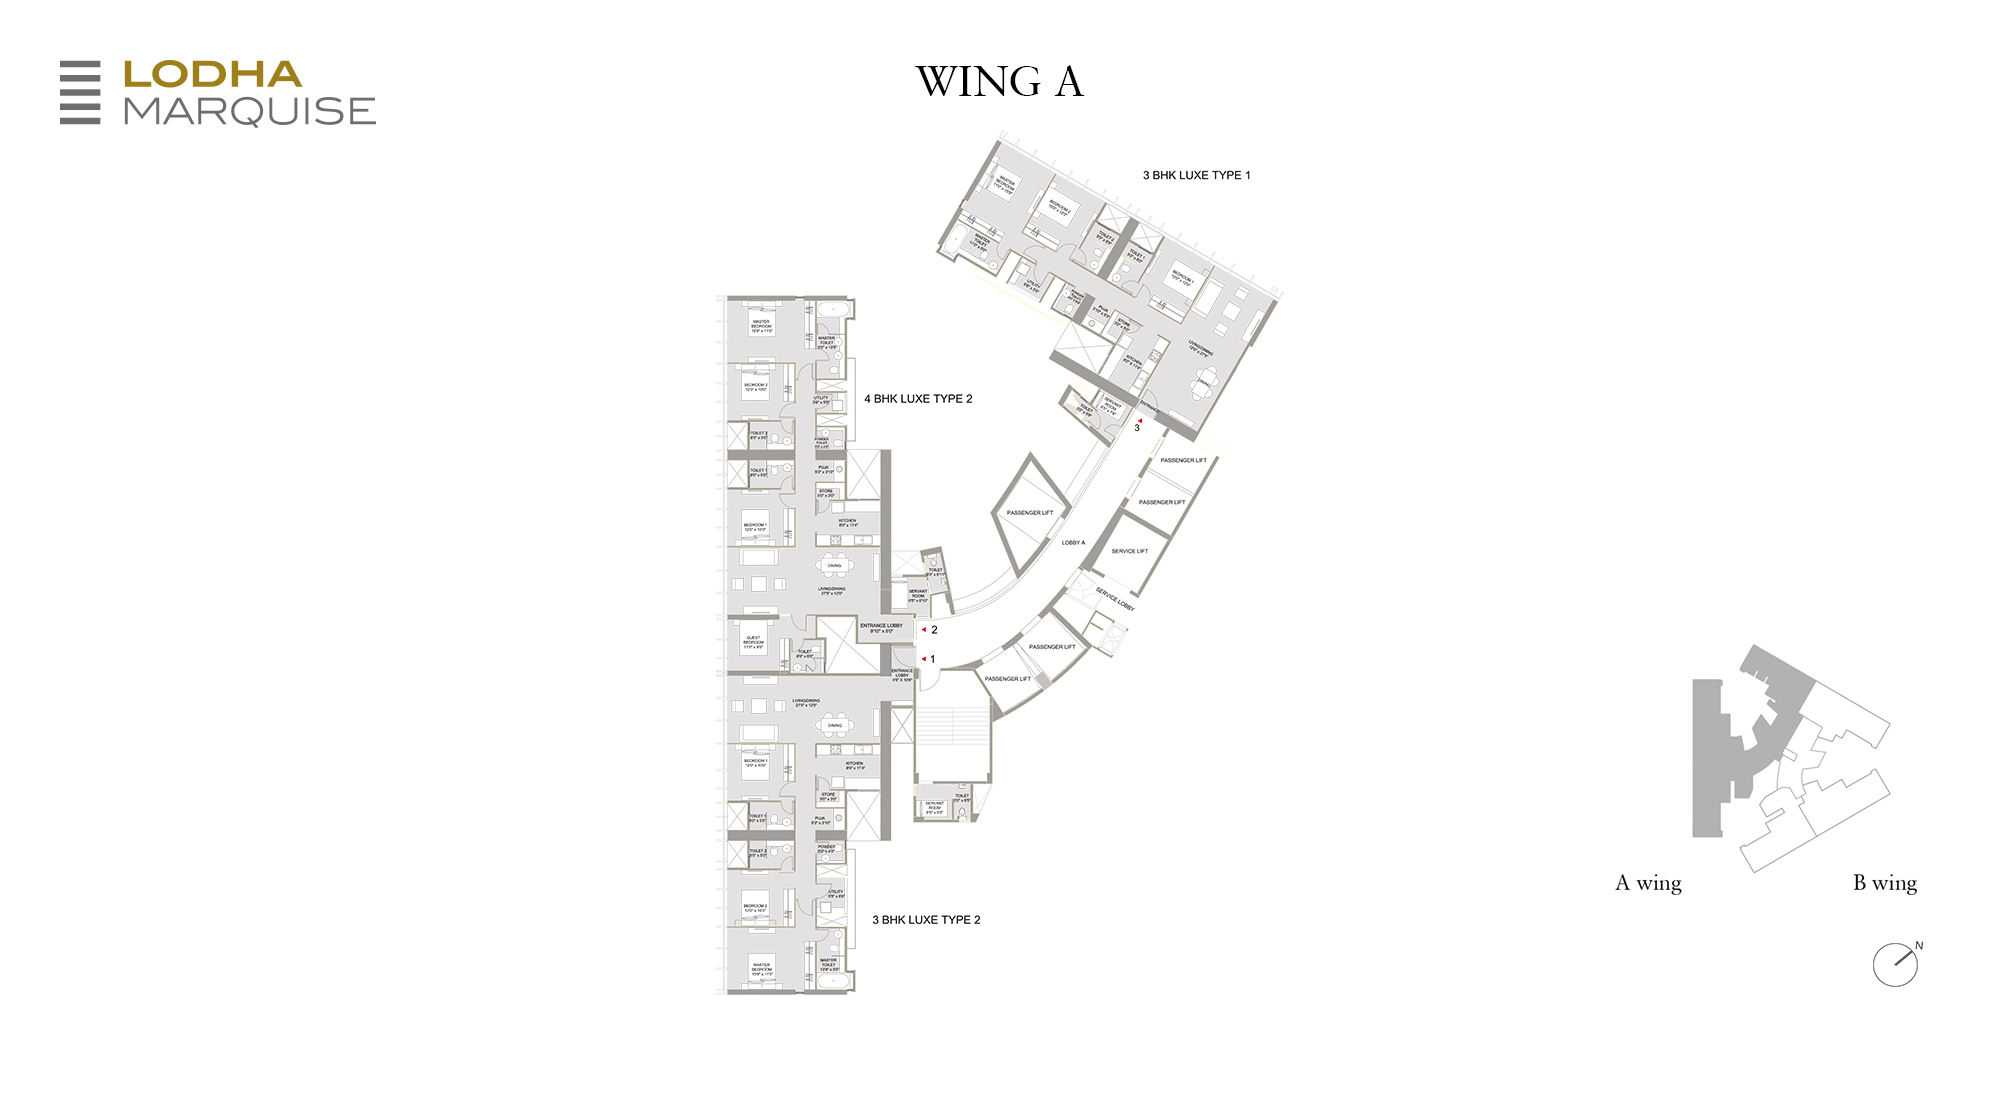 Marquise - A Wing Floor Plan